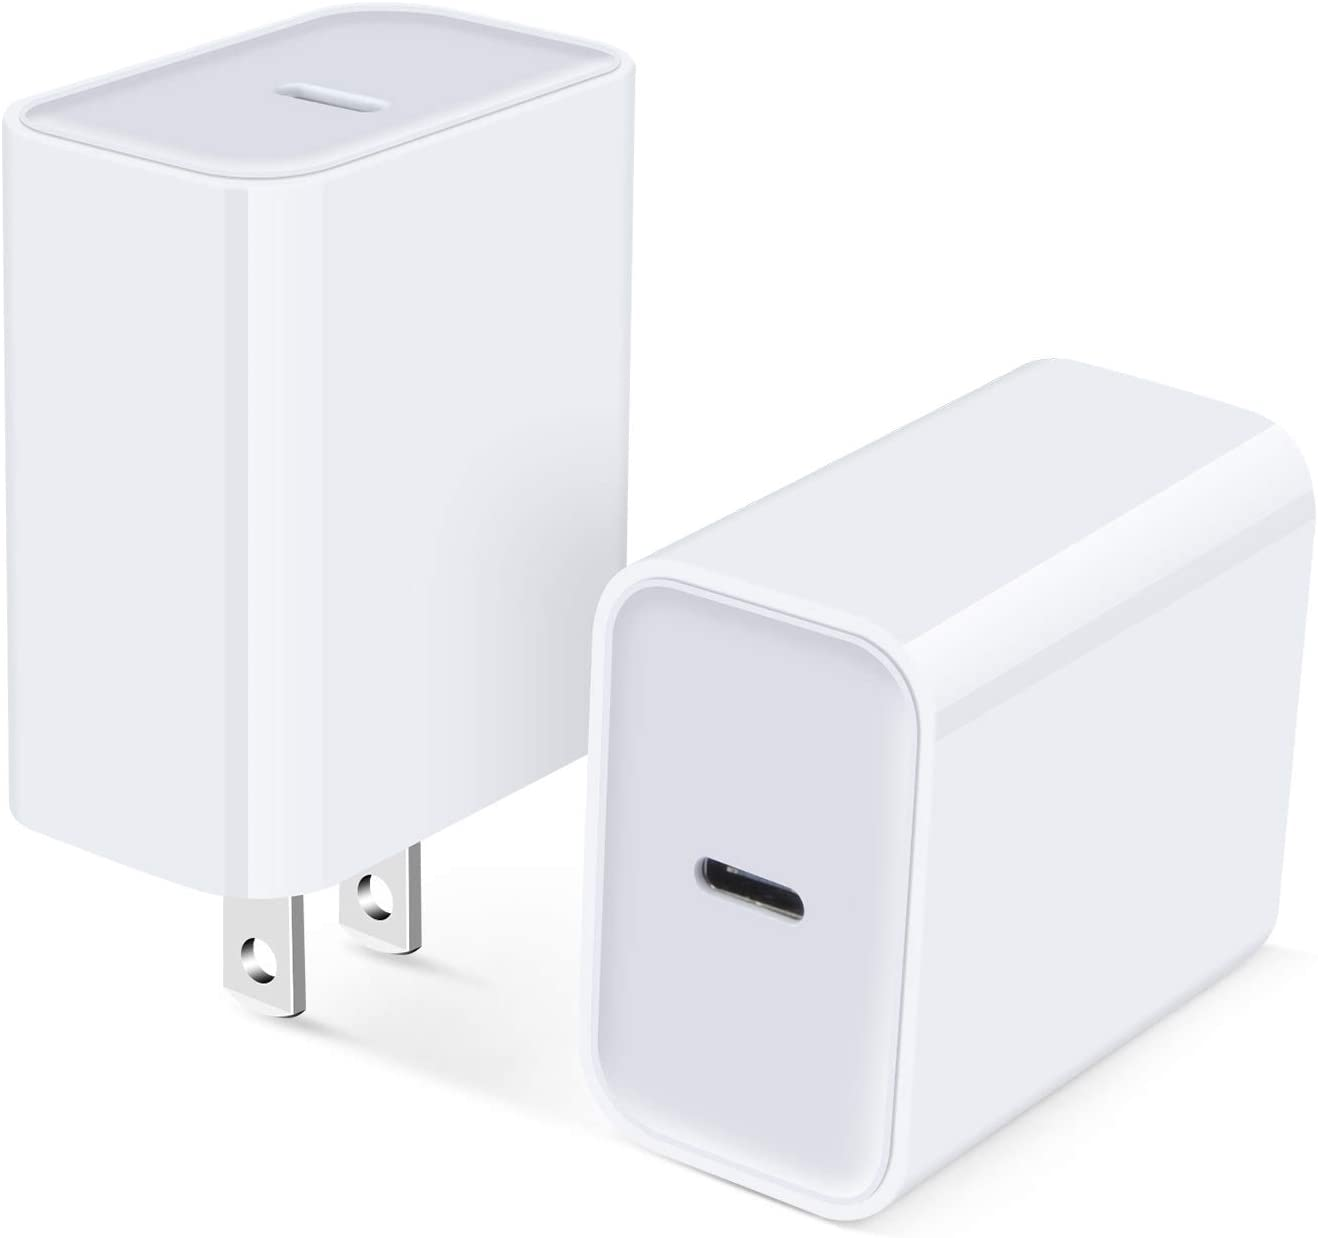 USB C Wall Charger, 2Pack 18W PD Fast Charging Block Brick Box Type C Wall Adapter Plug for iPhone 12 Mini/12 Pro Max/SE/11 Pro/XR/X, iPad, Samsung Galaxy S21 S20 Note20 A10E A51 A71 Pixel 5 4a 4 3XL